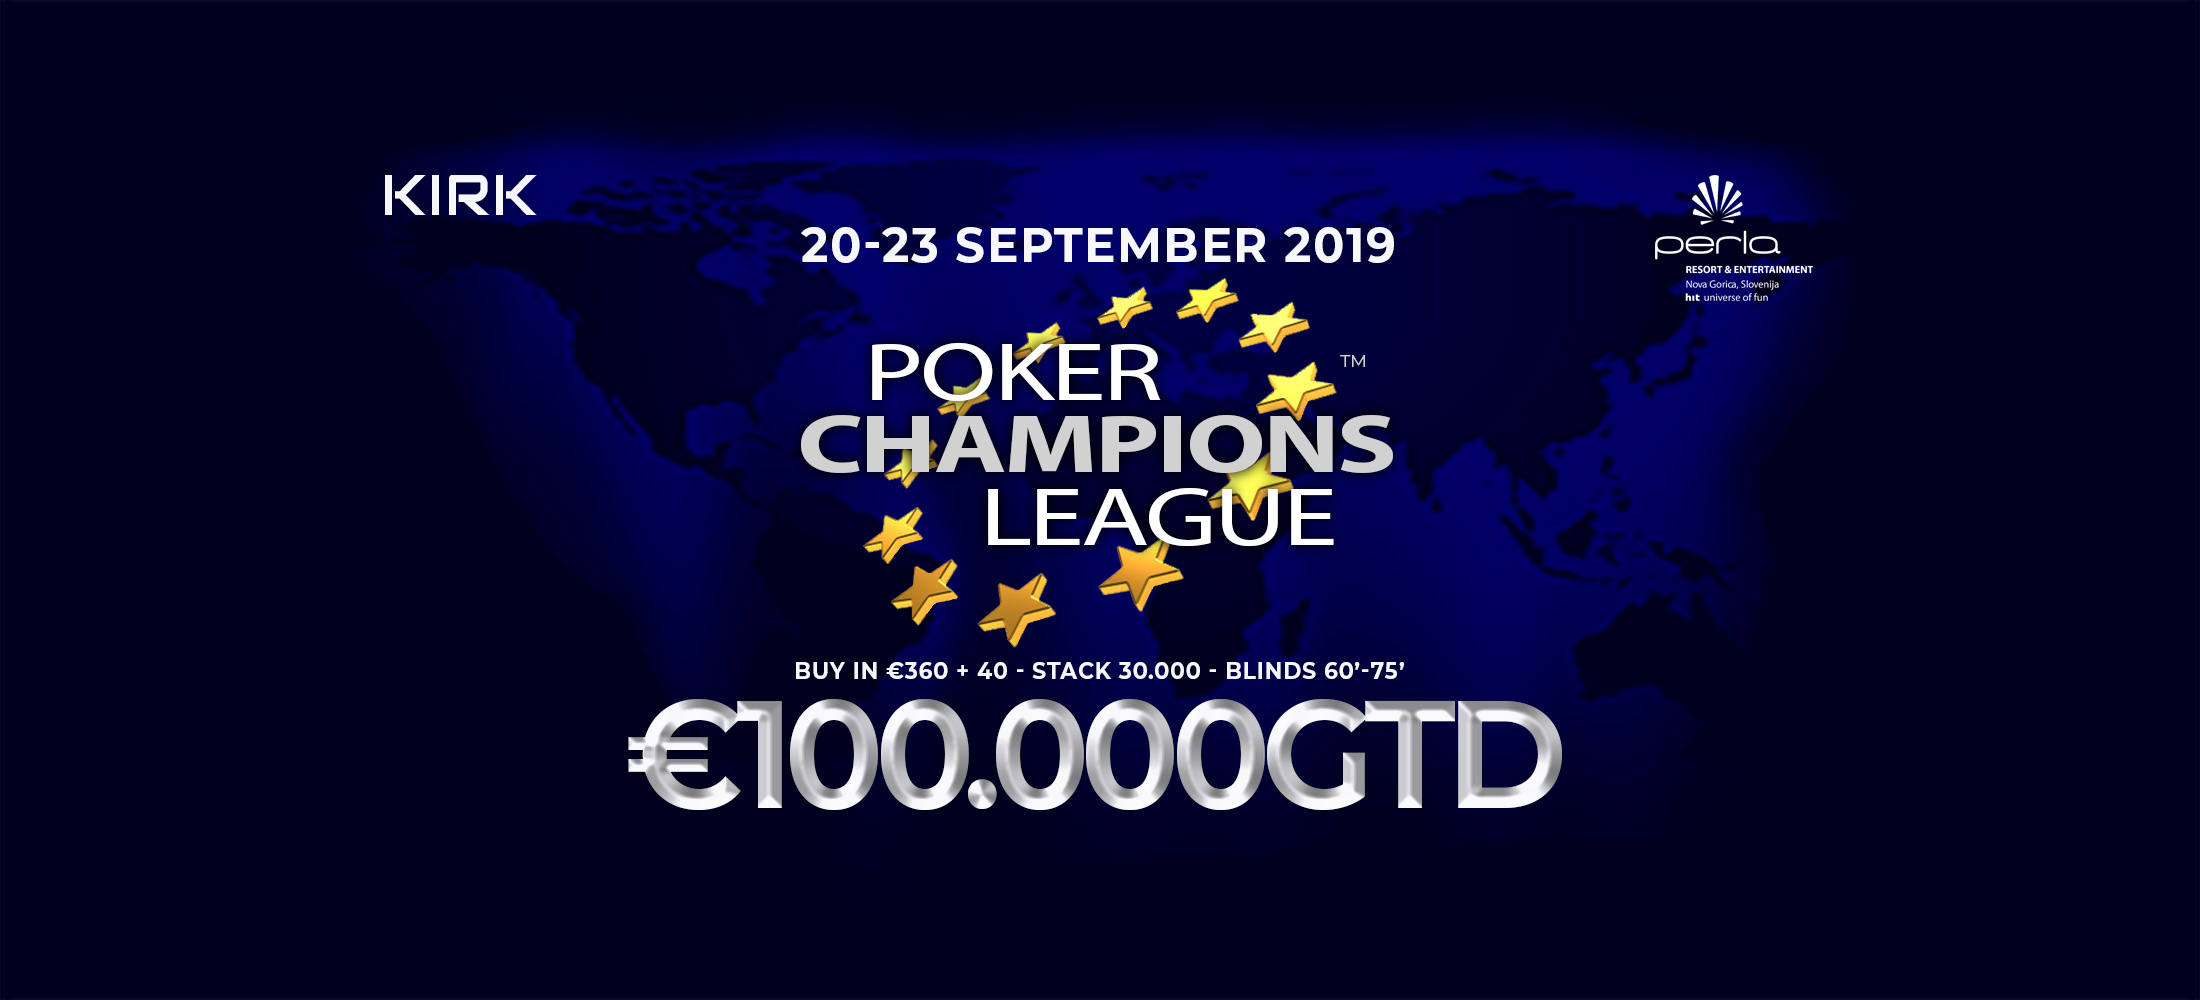 Poker Champions League 2019 – The poker tournament for strategy lovers